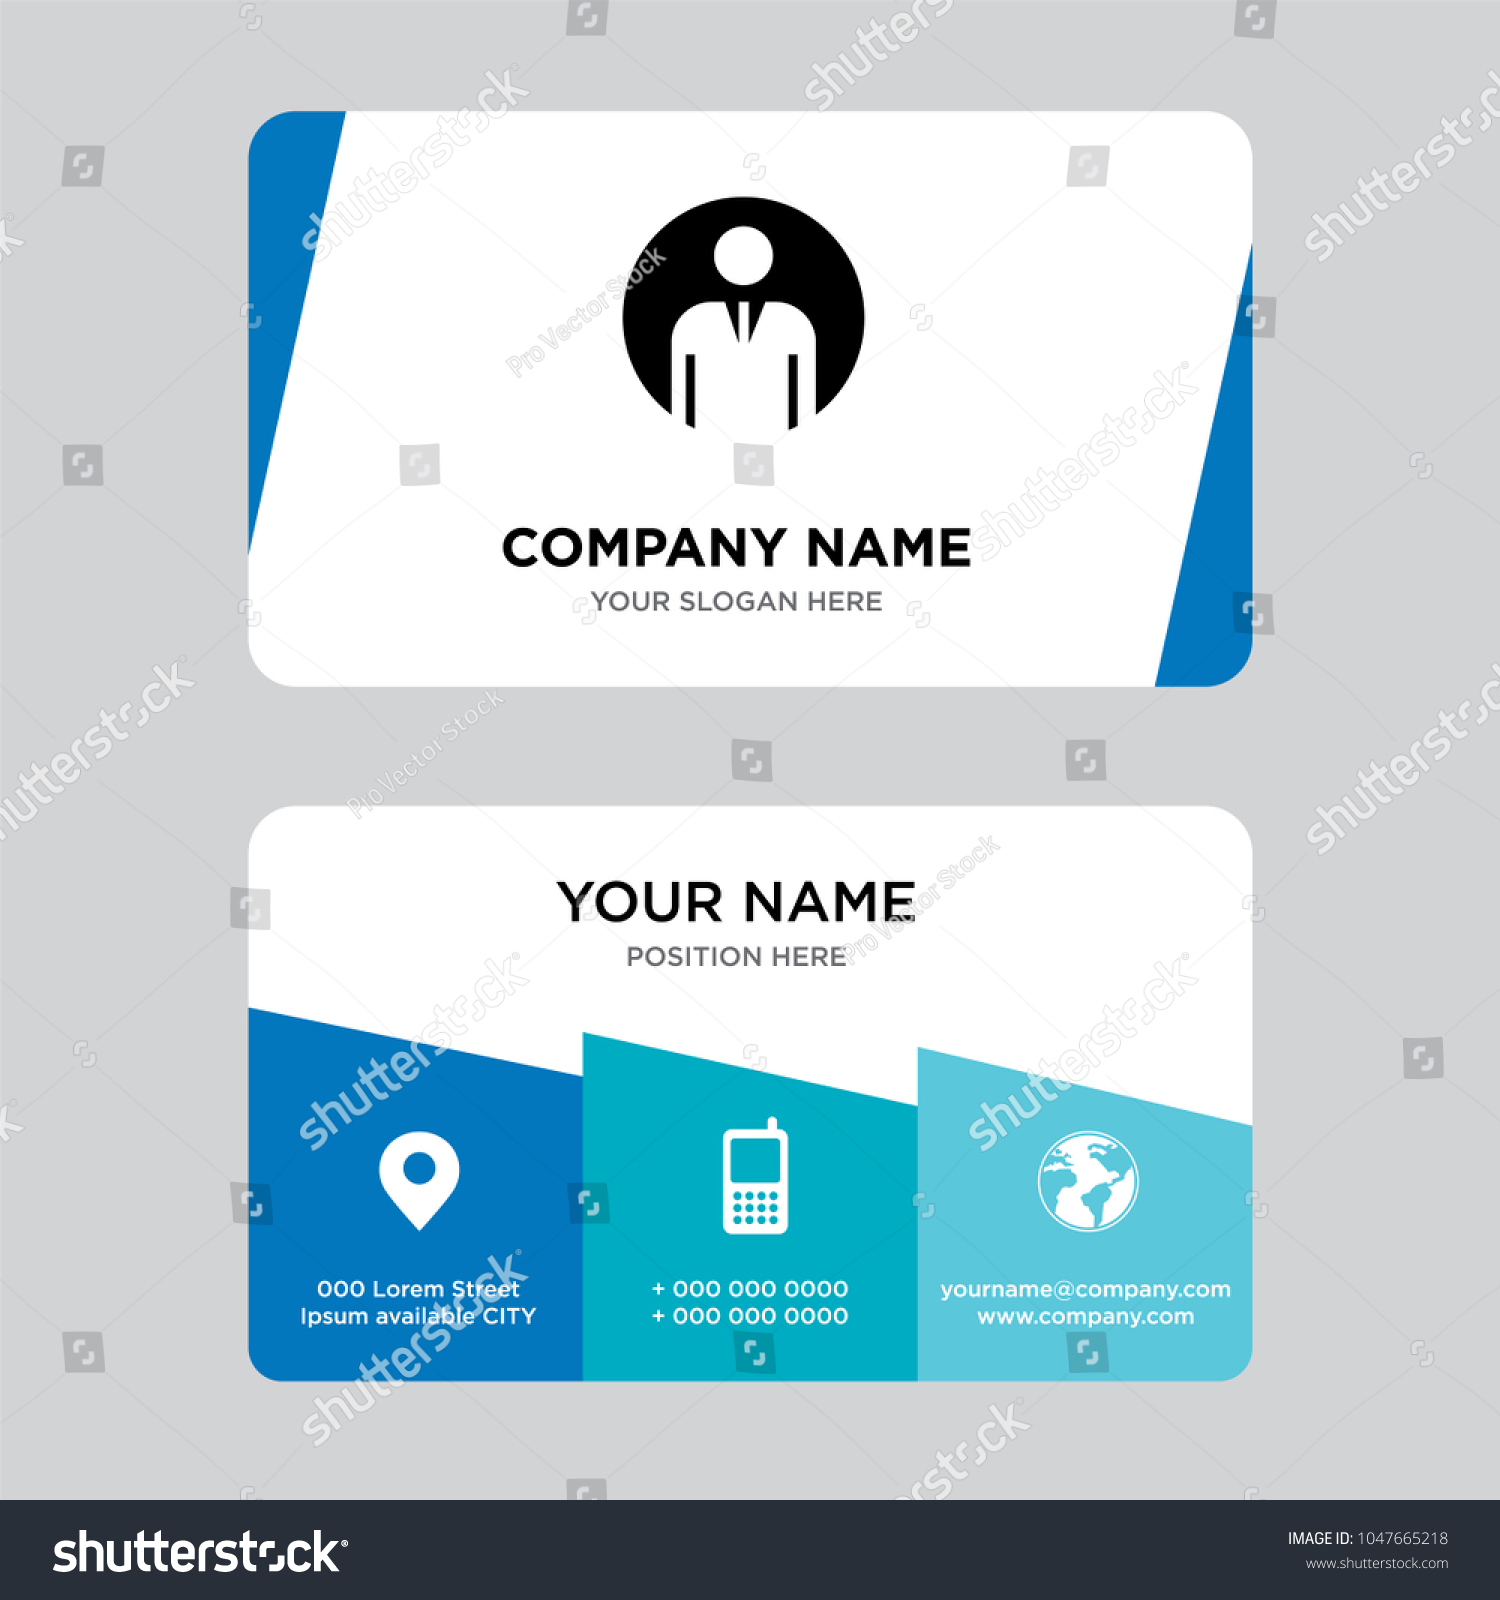 Generic Person Business Card Design Template Stock Vector 1047665218 ...